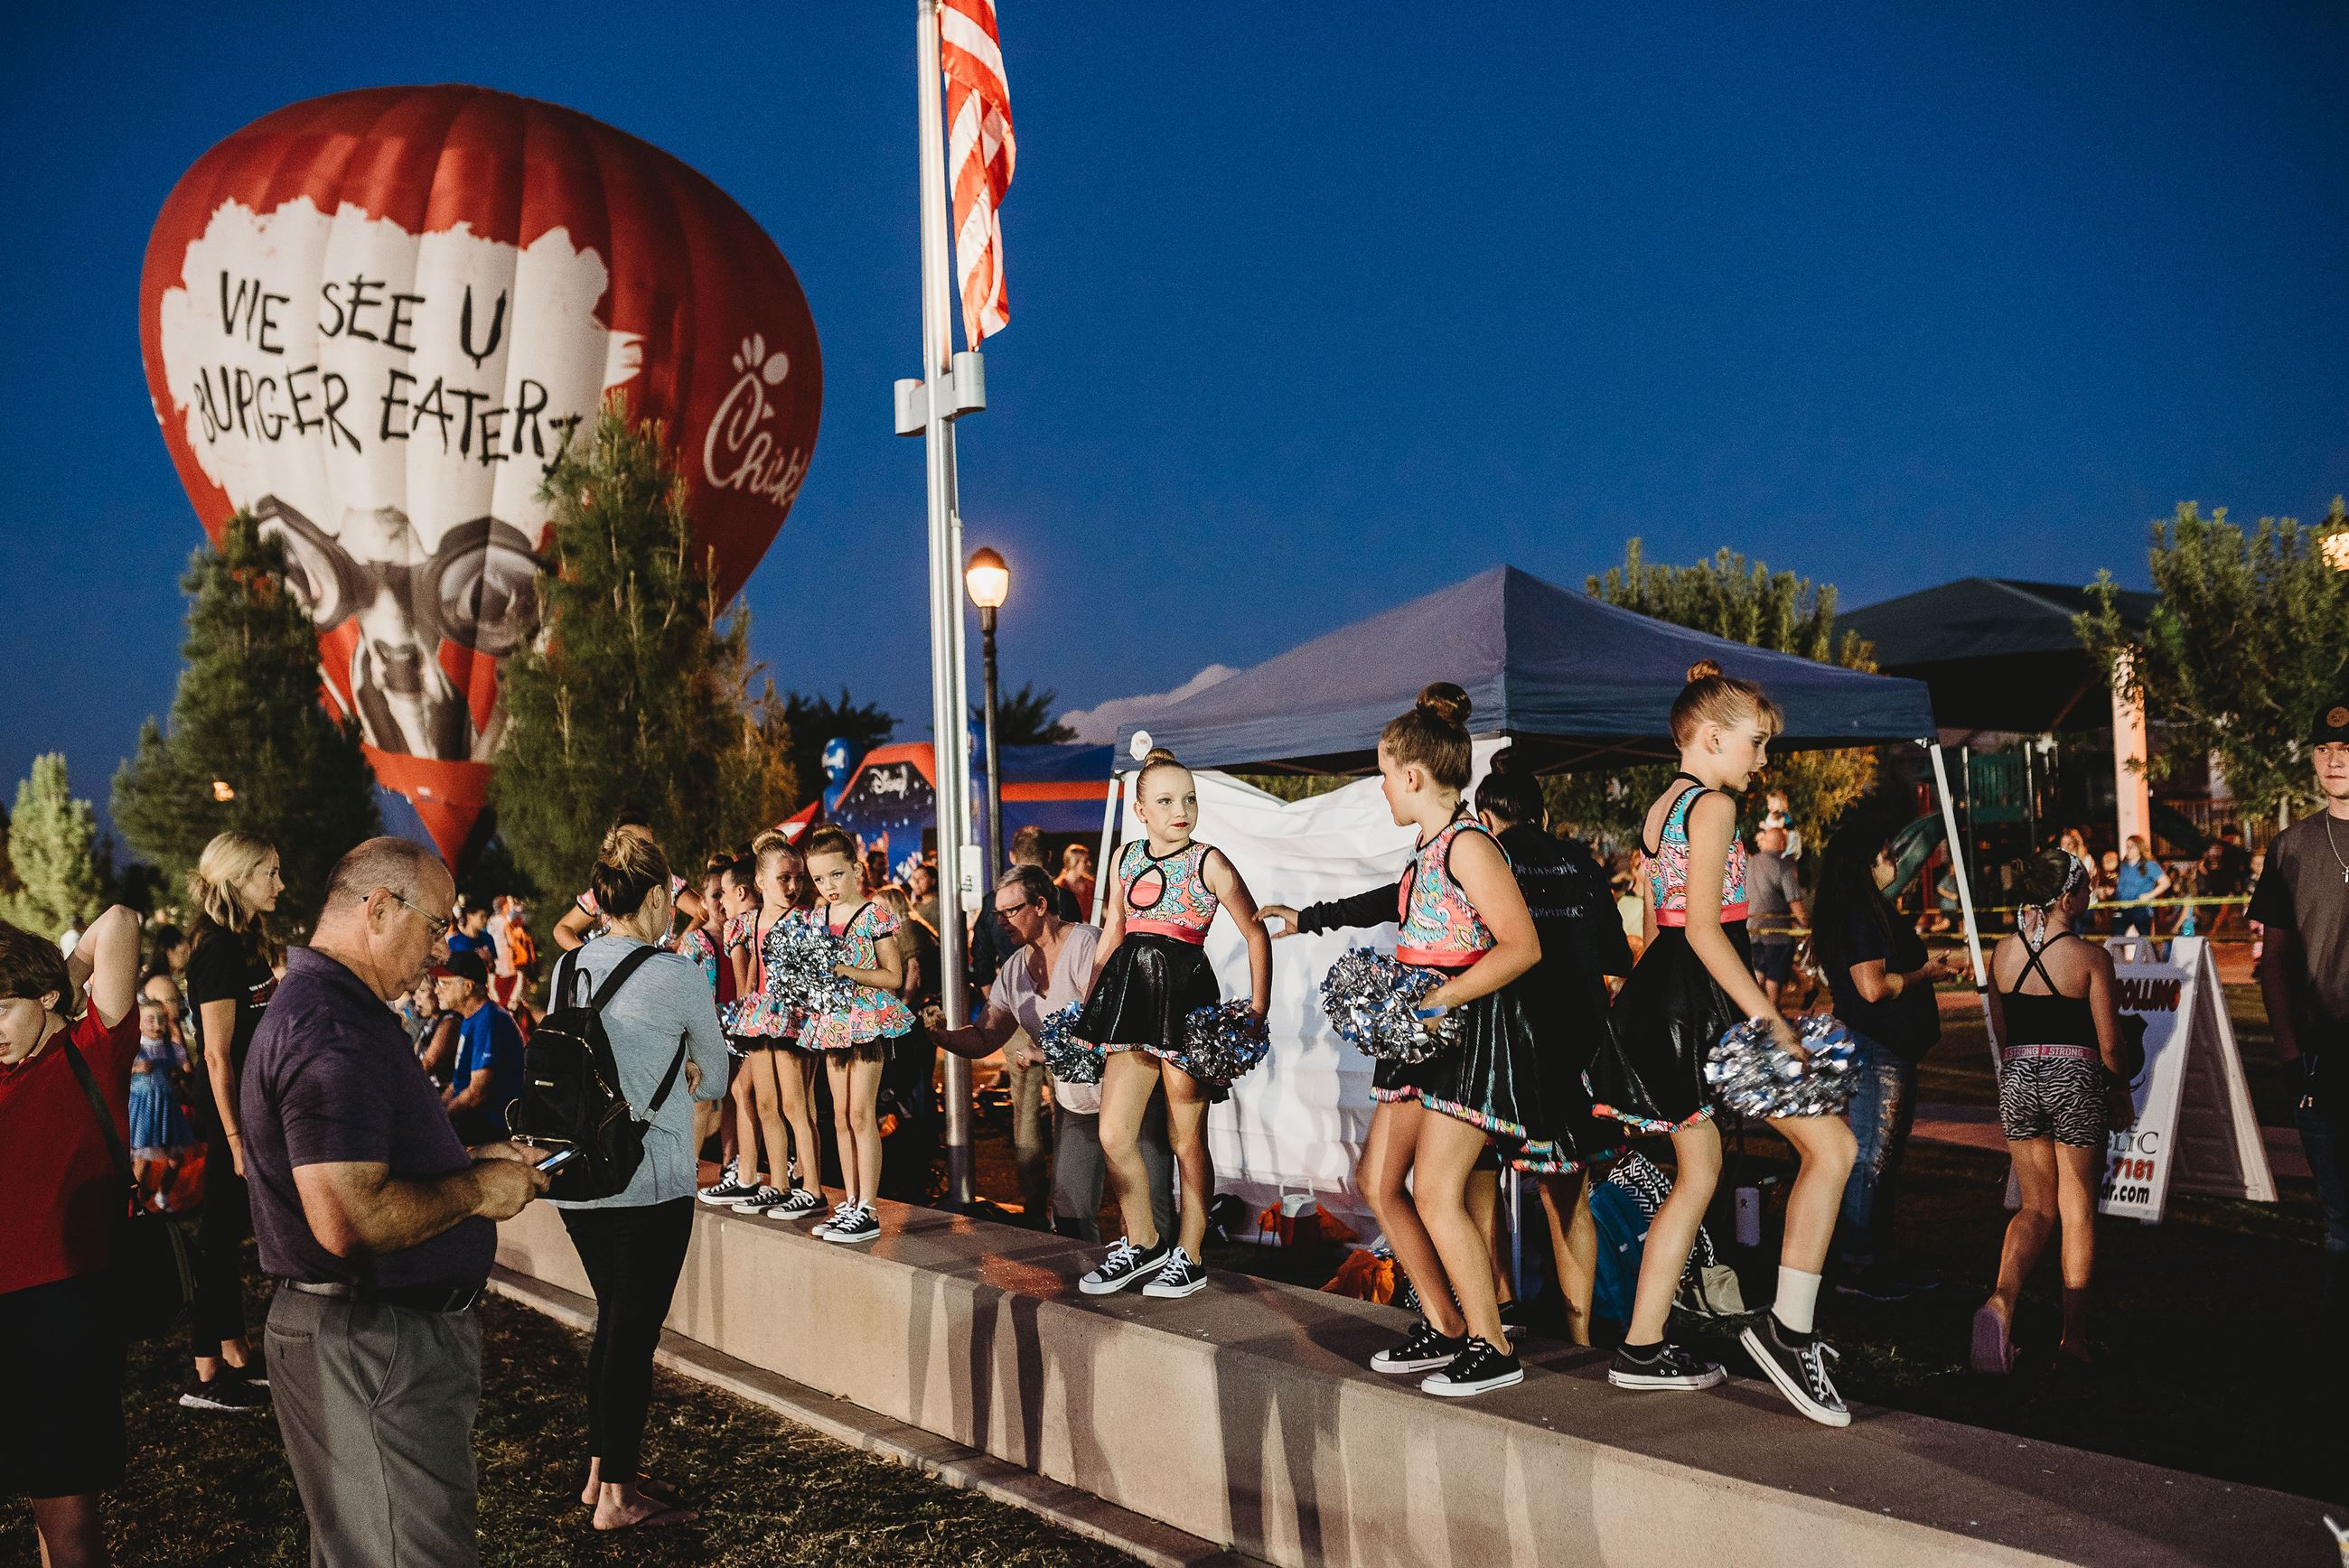 Young Cheerleaders Line up as the Festival Enters the Night -  a Big Chick-fil-A Hot Air Ballon Can